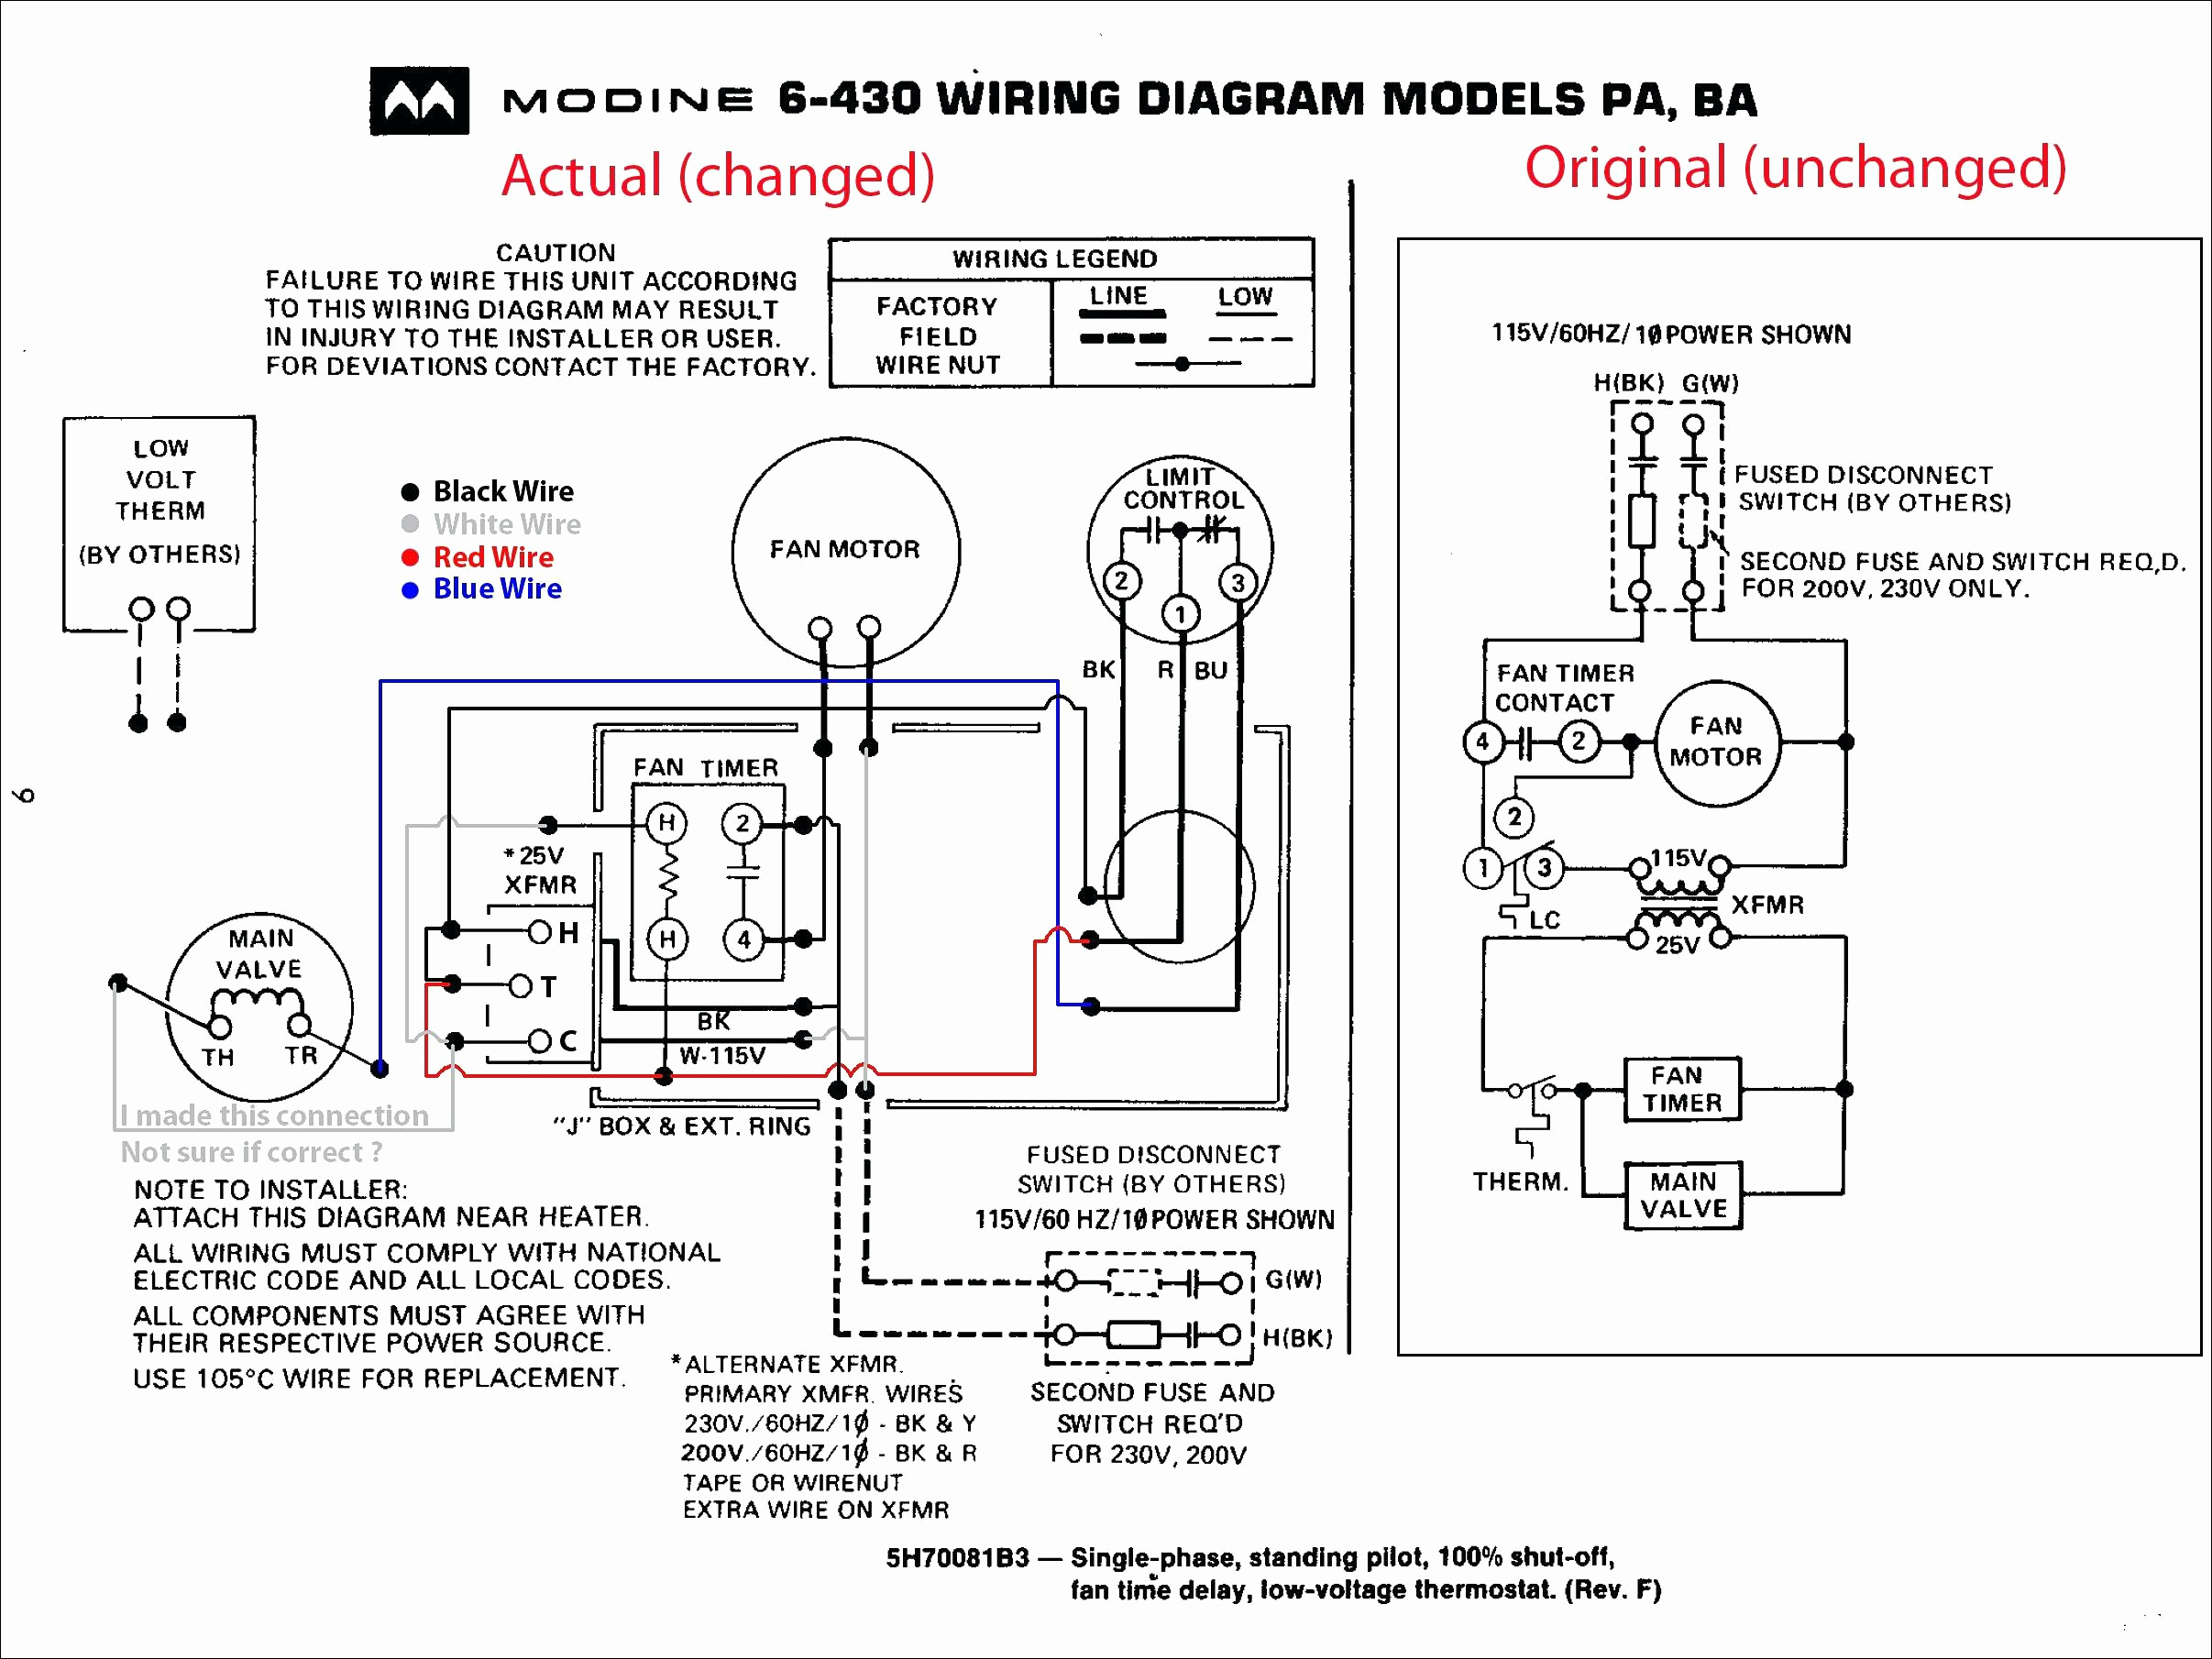 modine heater wiring diagram Collection-Modine Heater Parts Diagram for Amazing Trane Gas Furnace Wiring Diagram Image Electrical Diagram 2-t